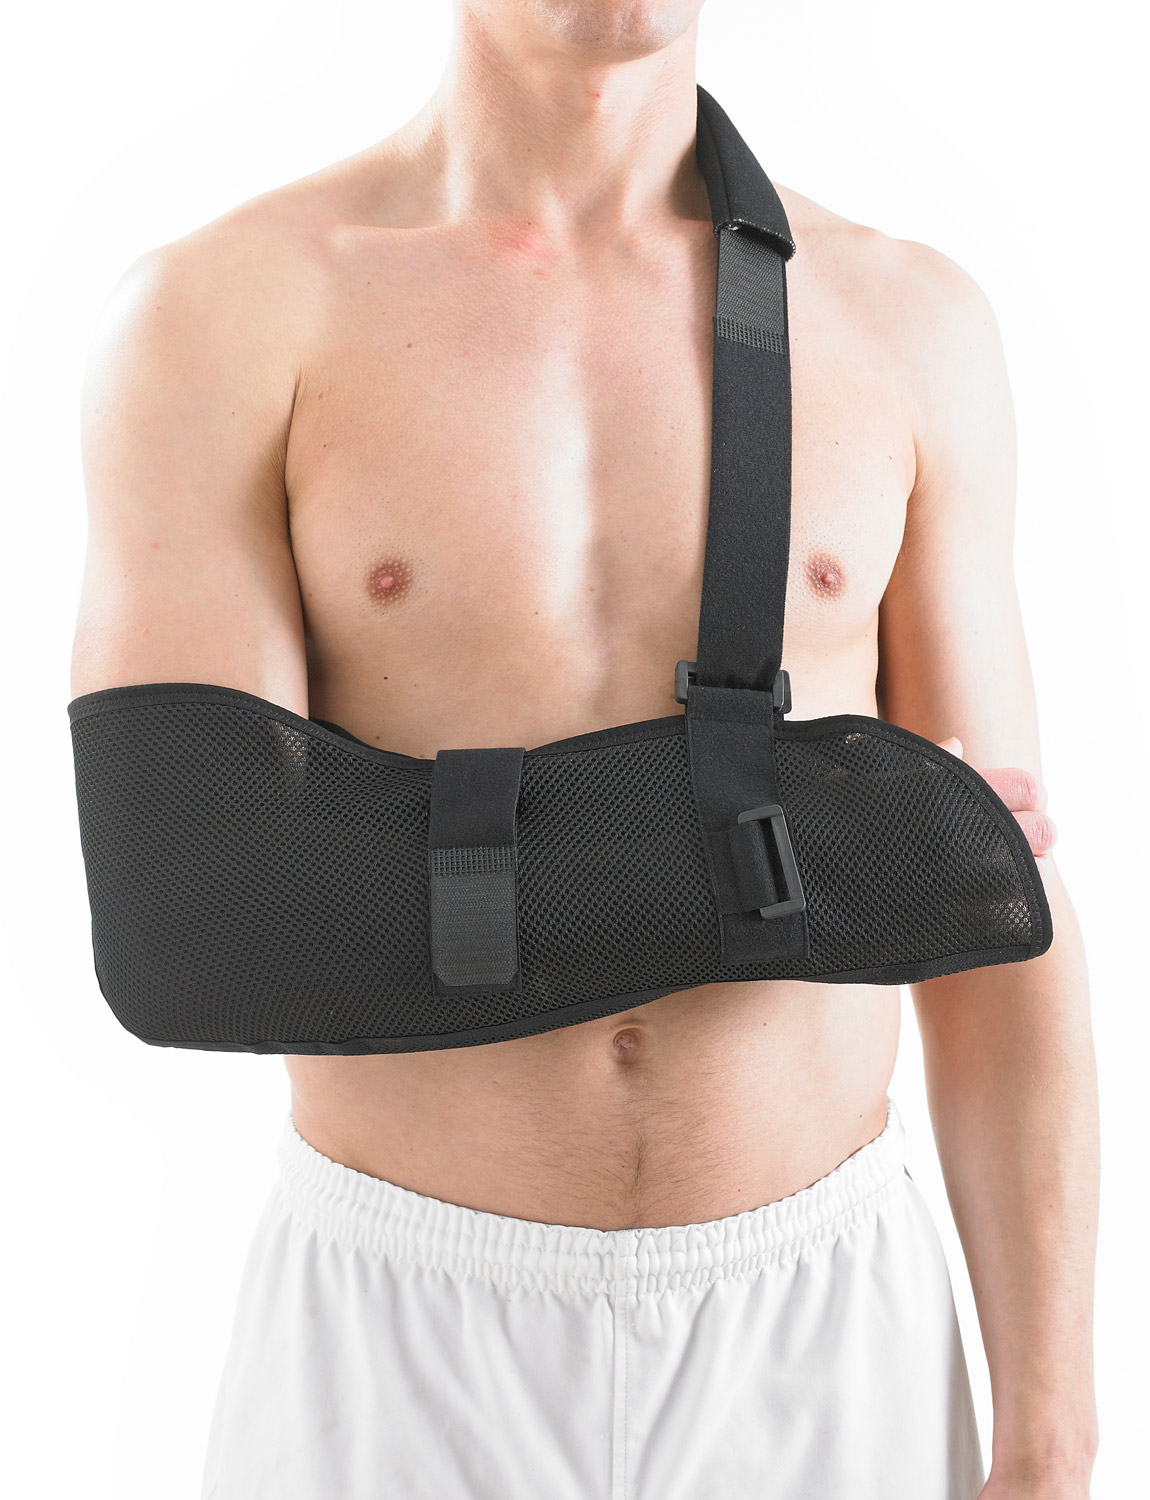 997 -AIRFLOW BREATHABLE ARM SLING  constructed from breathable fabric for maximum comfort and control. It can be used for right or left arm/shoulder injuries and works by helping immobilize the shoulder and collar bone joints to aid a comfortable healing position to allow joint and soft tissue recovery.